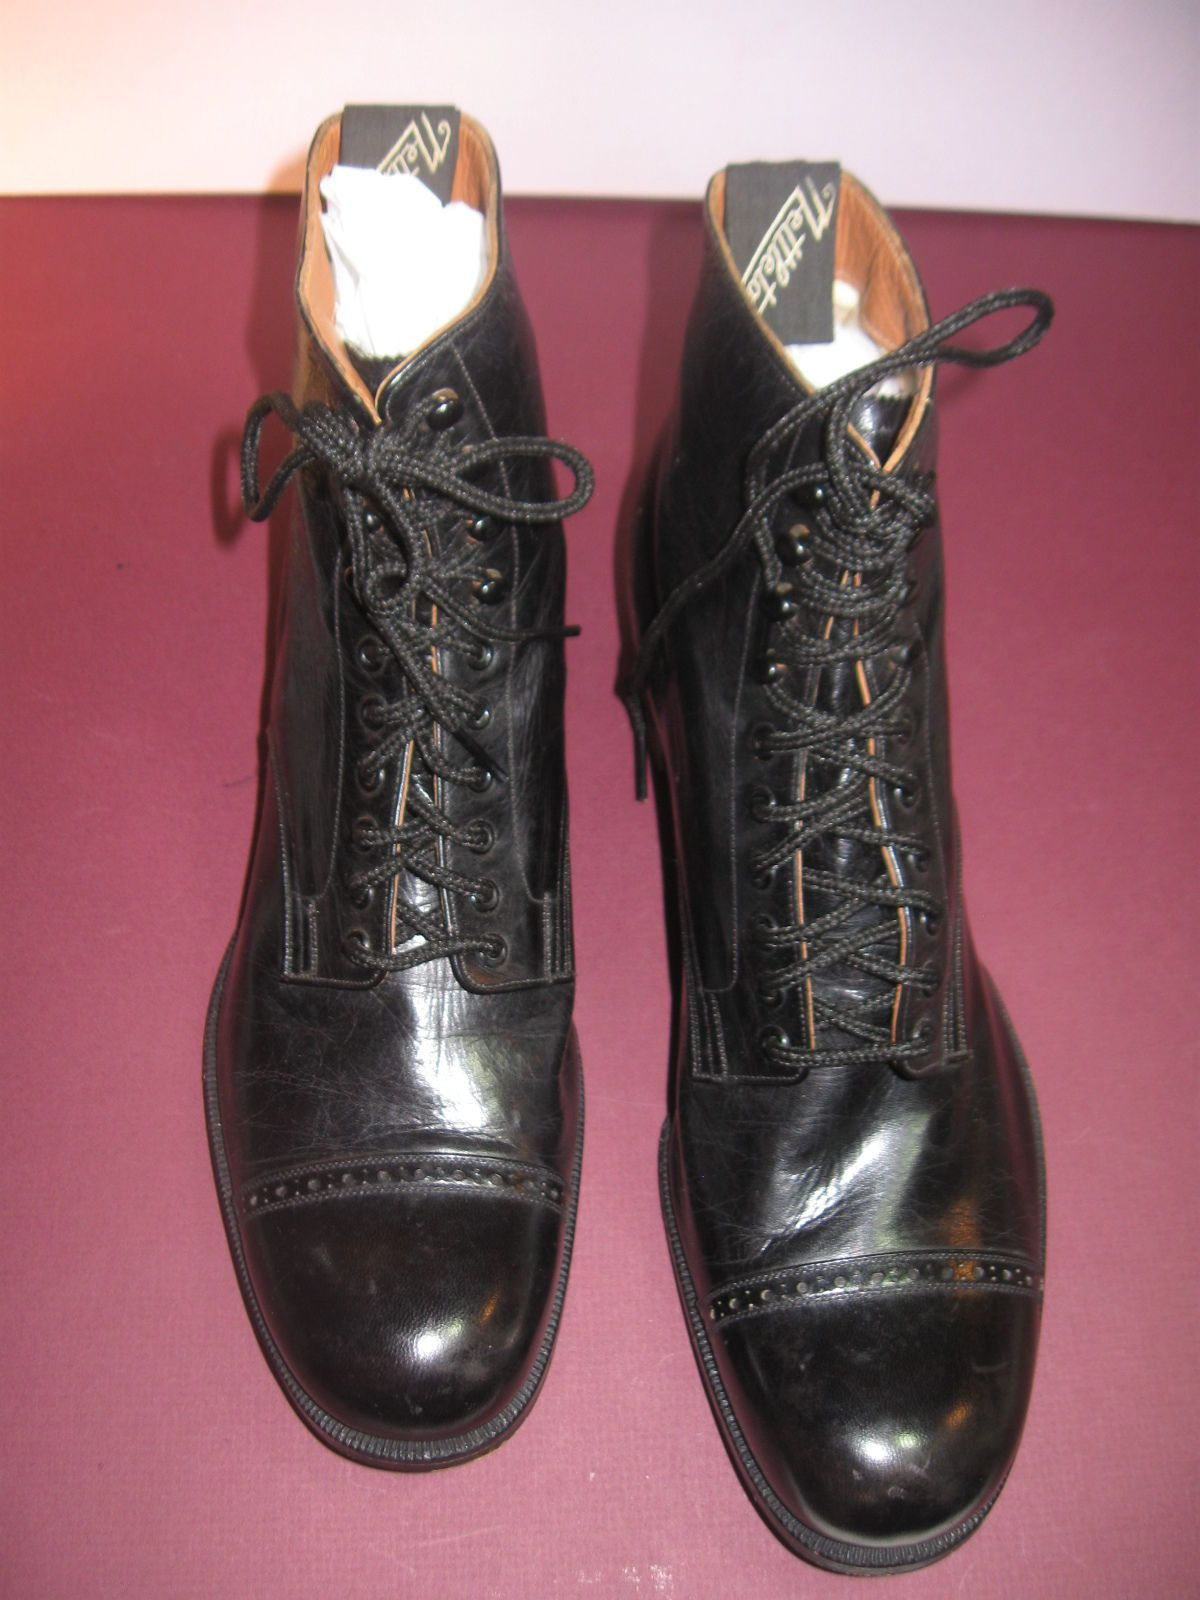 in Clothing, Shoes & Accessories, Vintage, Men's Vintage Shoes